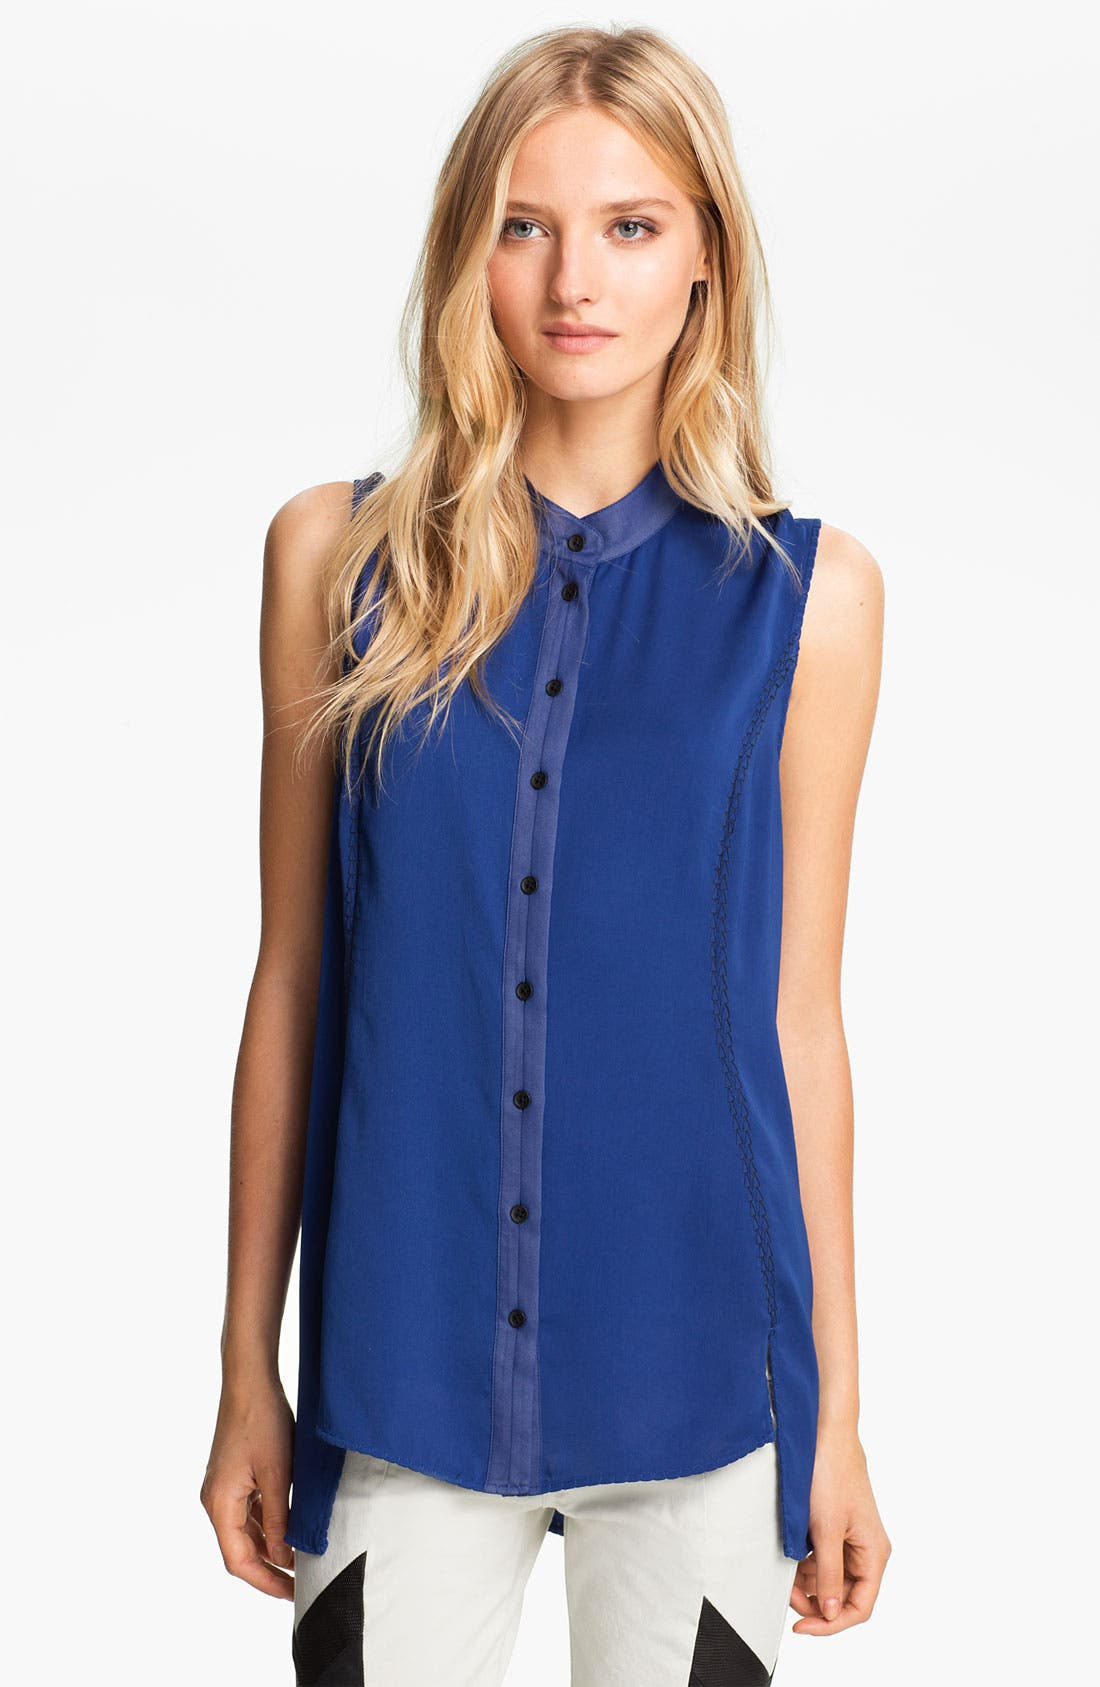 Alternate Image 1 Selected - rag & bone 'Noris' Sleeveless Top